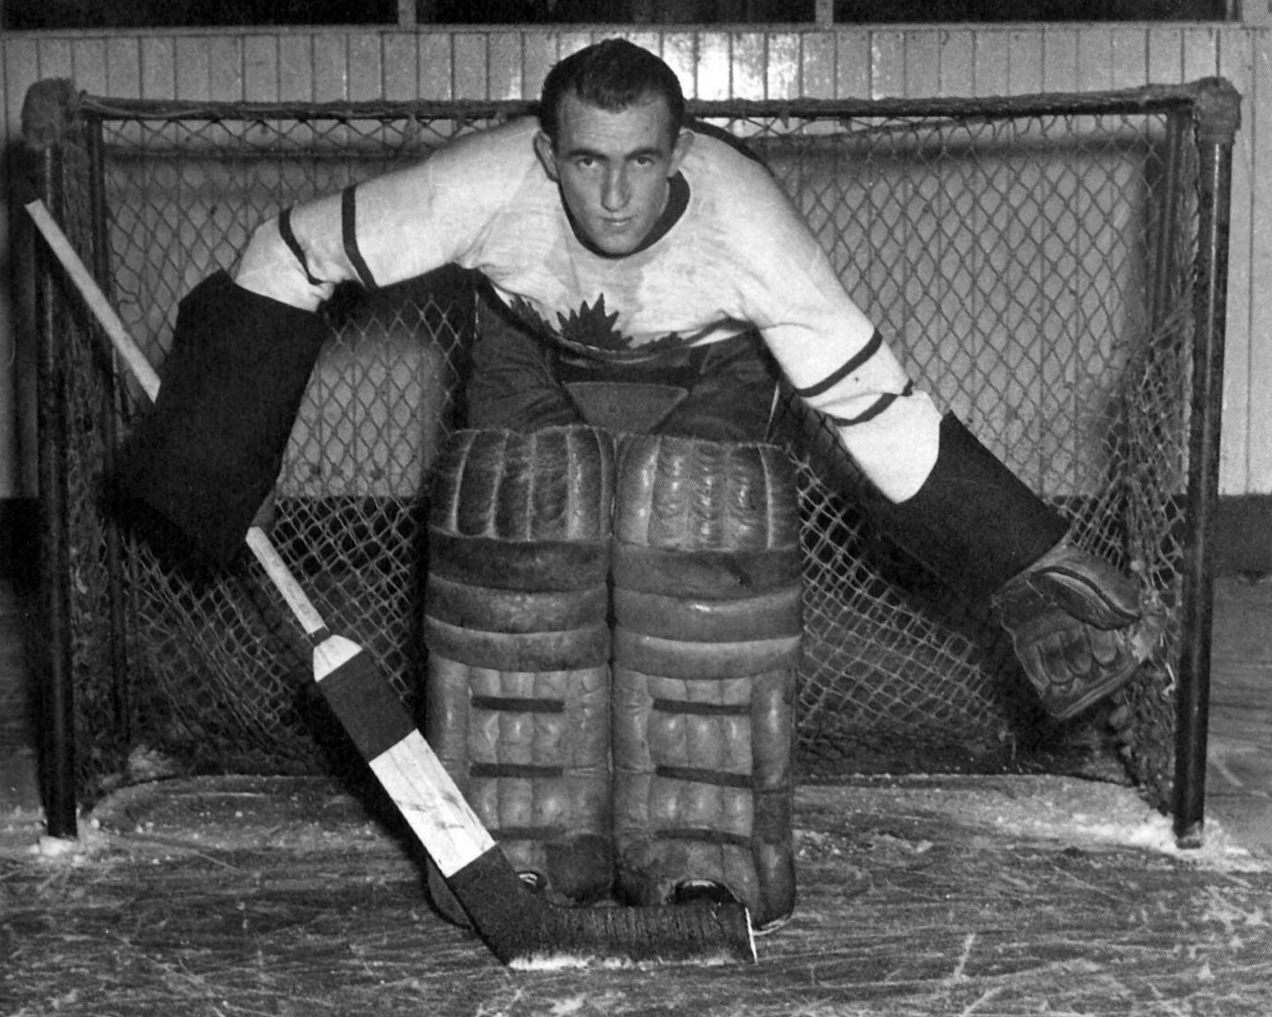 Frank Mccool Toronto Maple Leafs Stanley Cup Champion